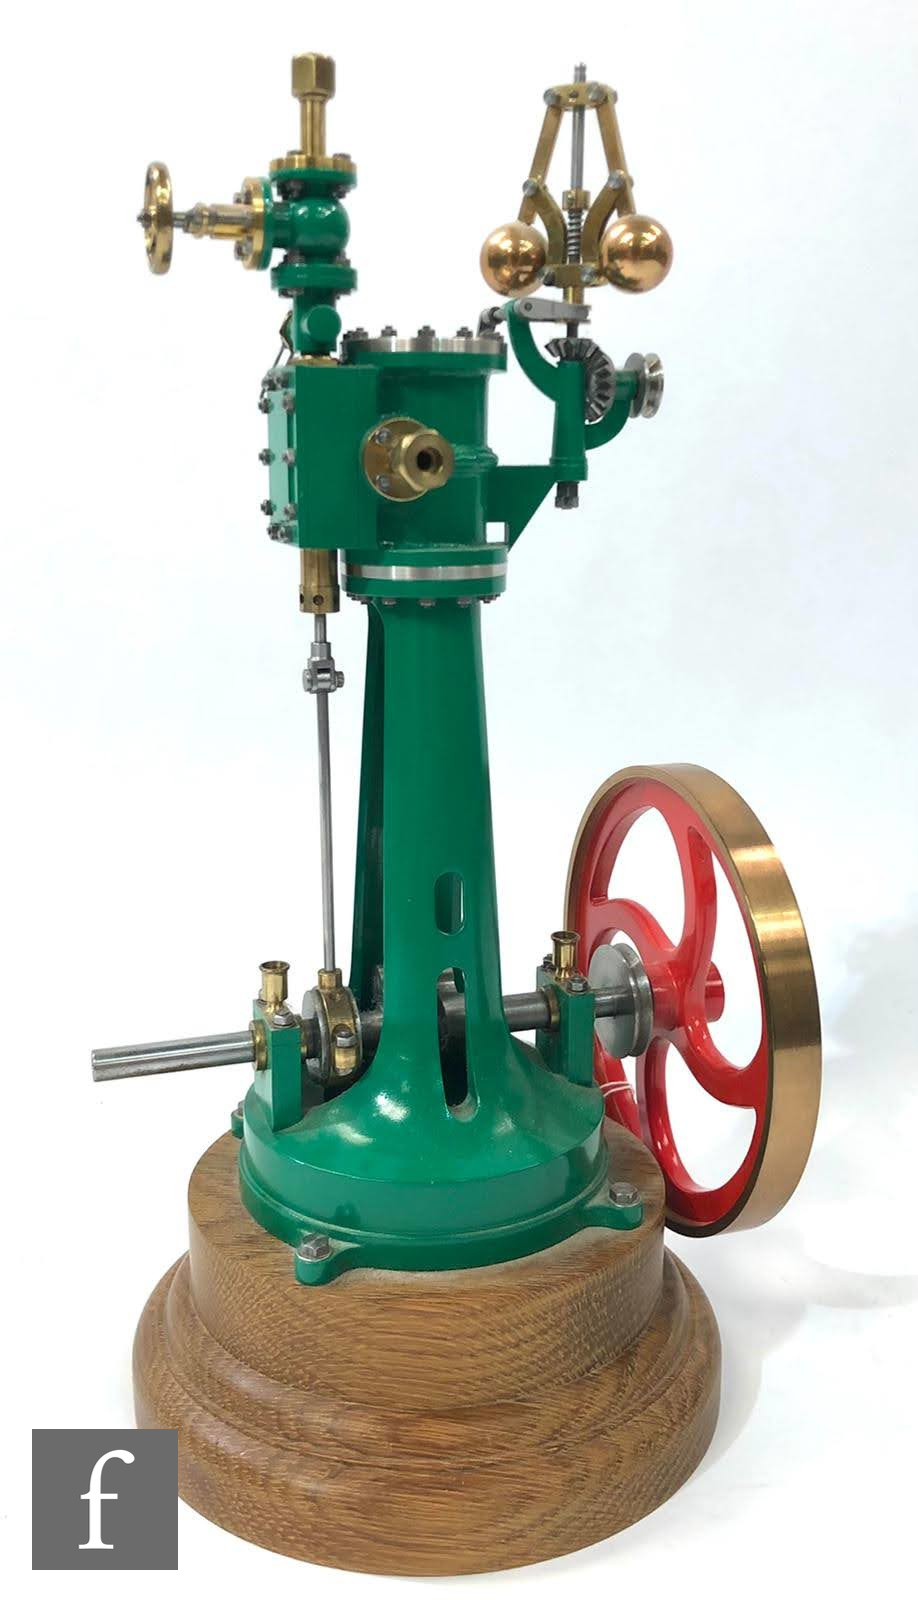 A vertical live steam engine with single oscillating cylinder and centrifugal governor, painted in